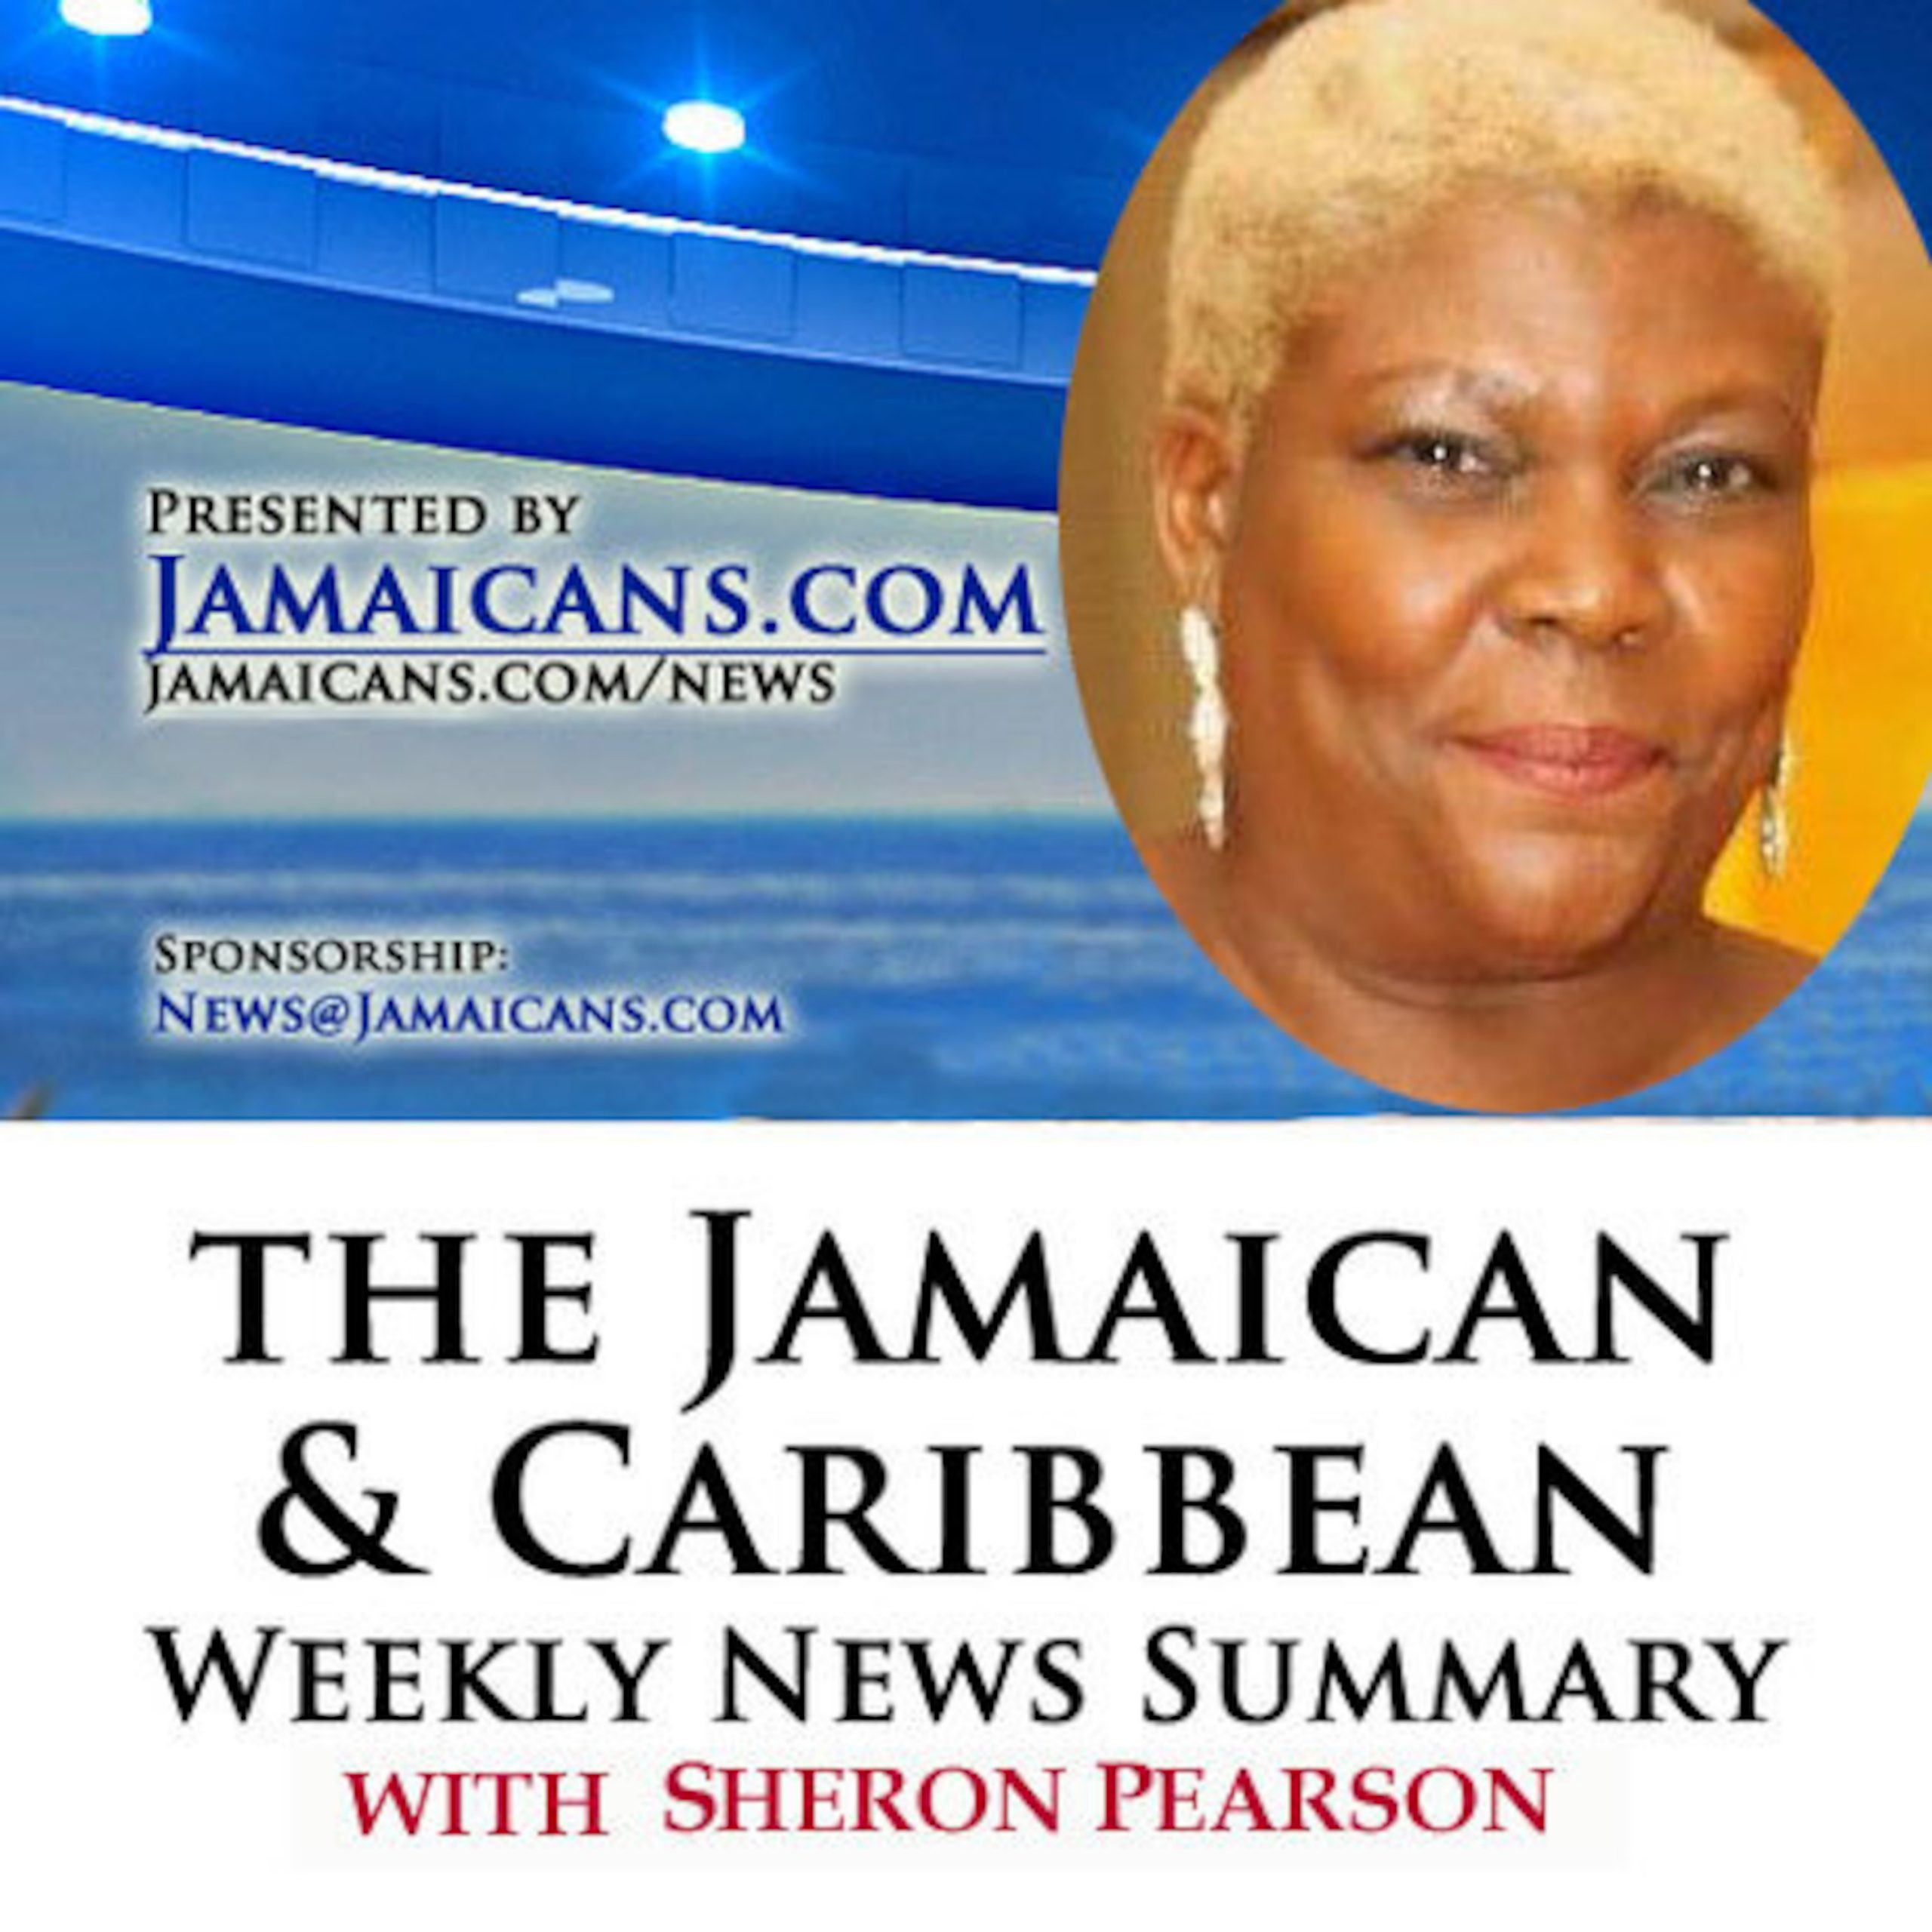 Listen to the Podcast of The Jamaica & Caribbean Weekly News Summary for the week ending November 22, 2019